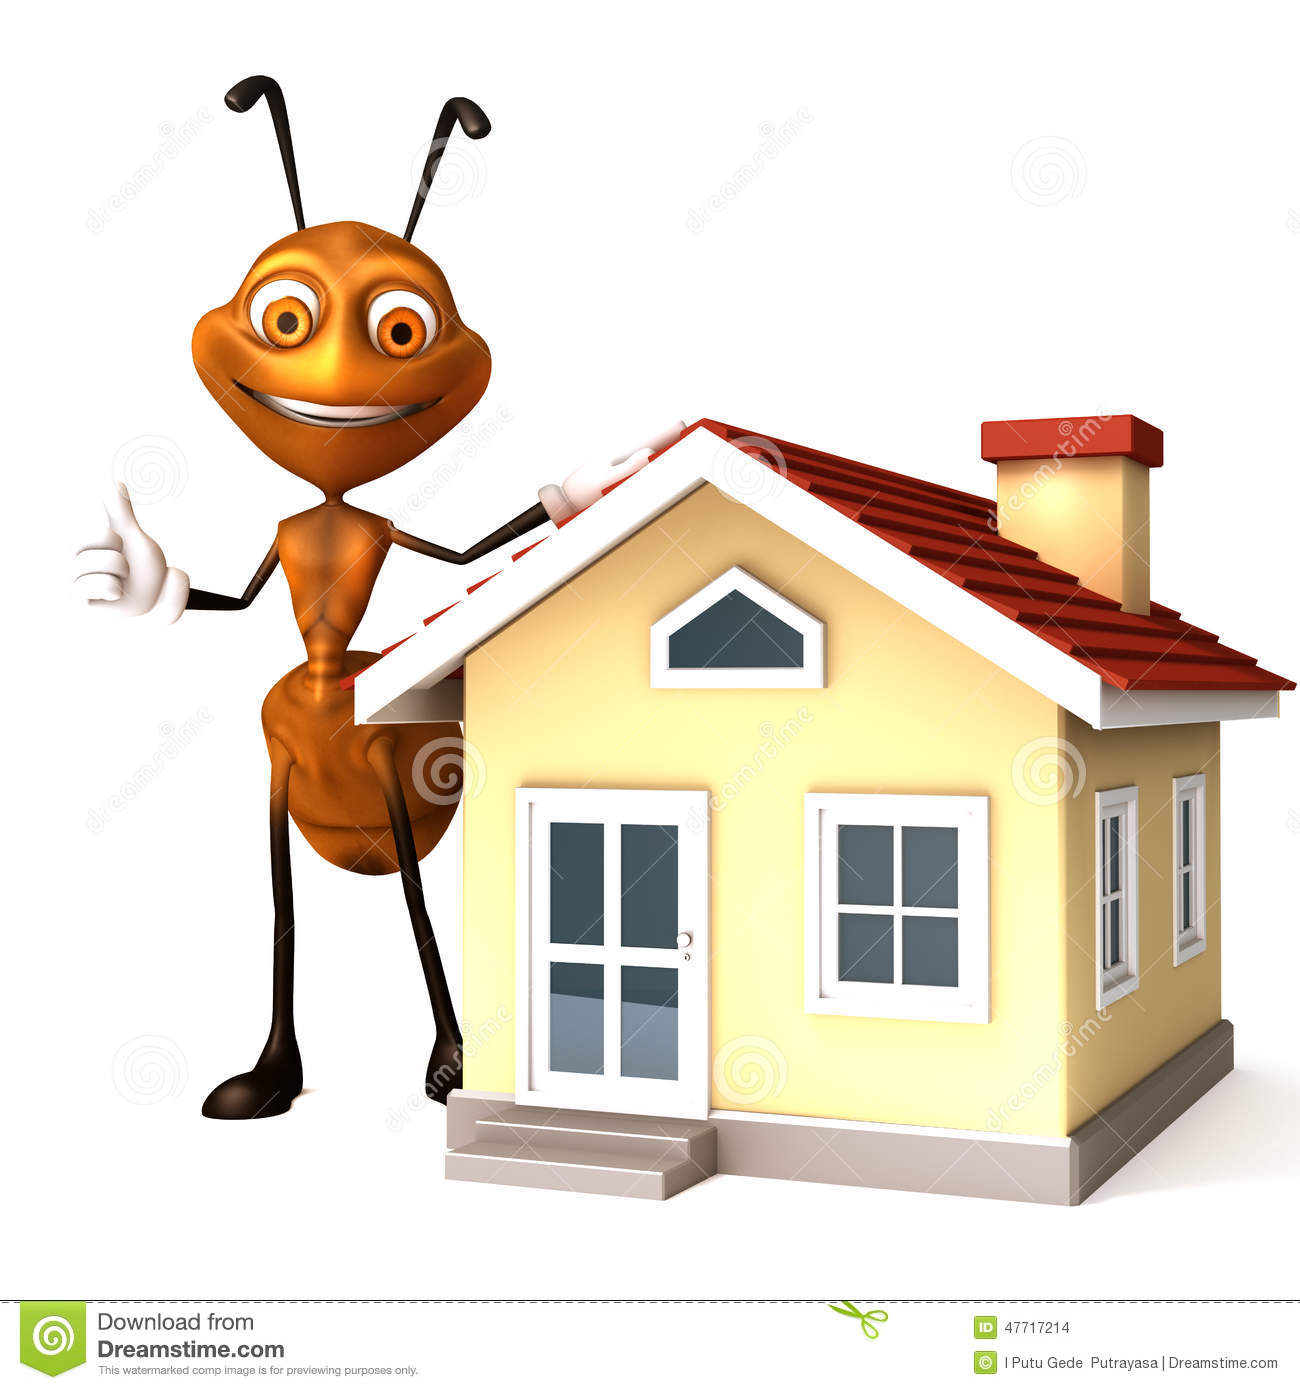 Insect house clipart - Clipground